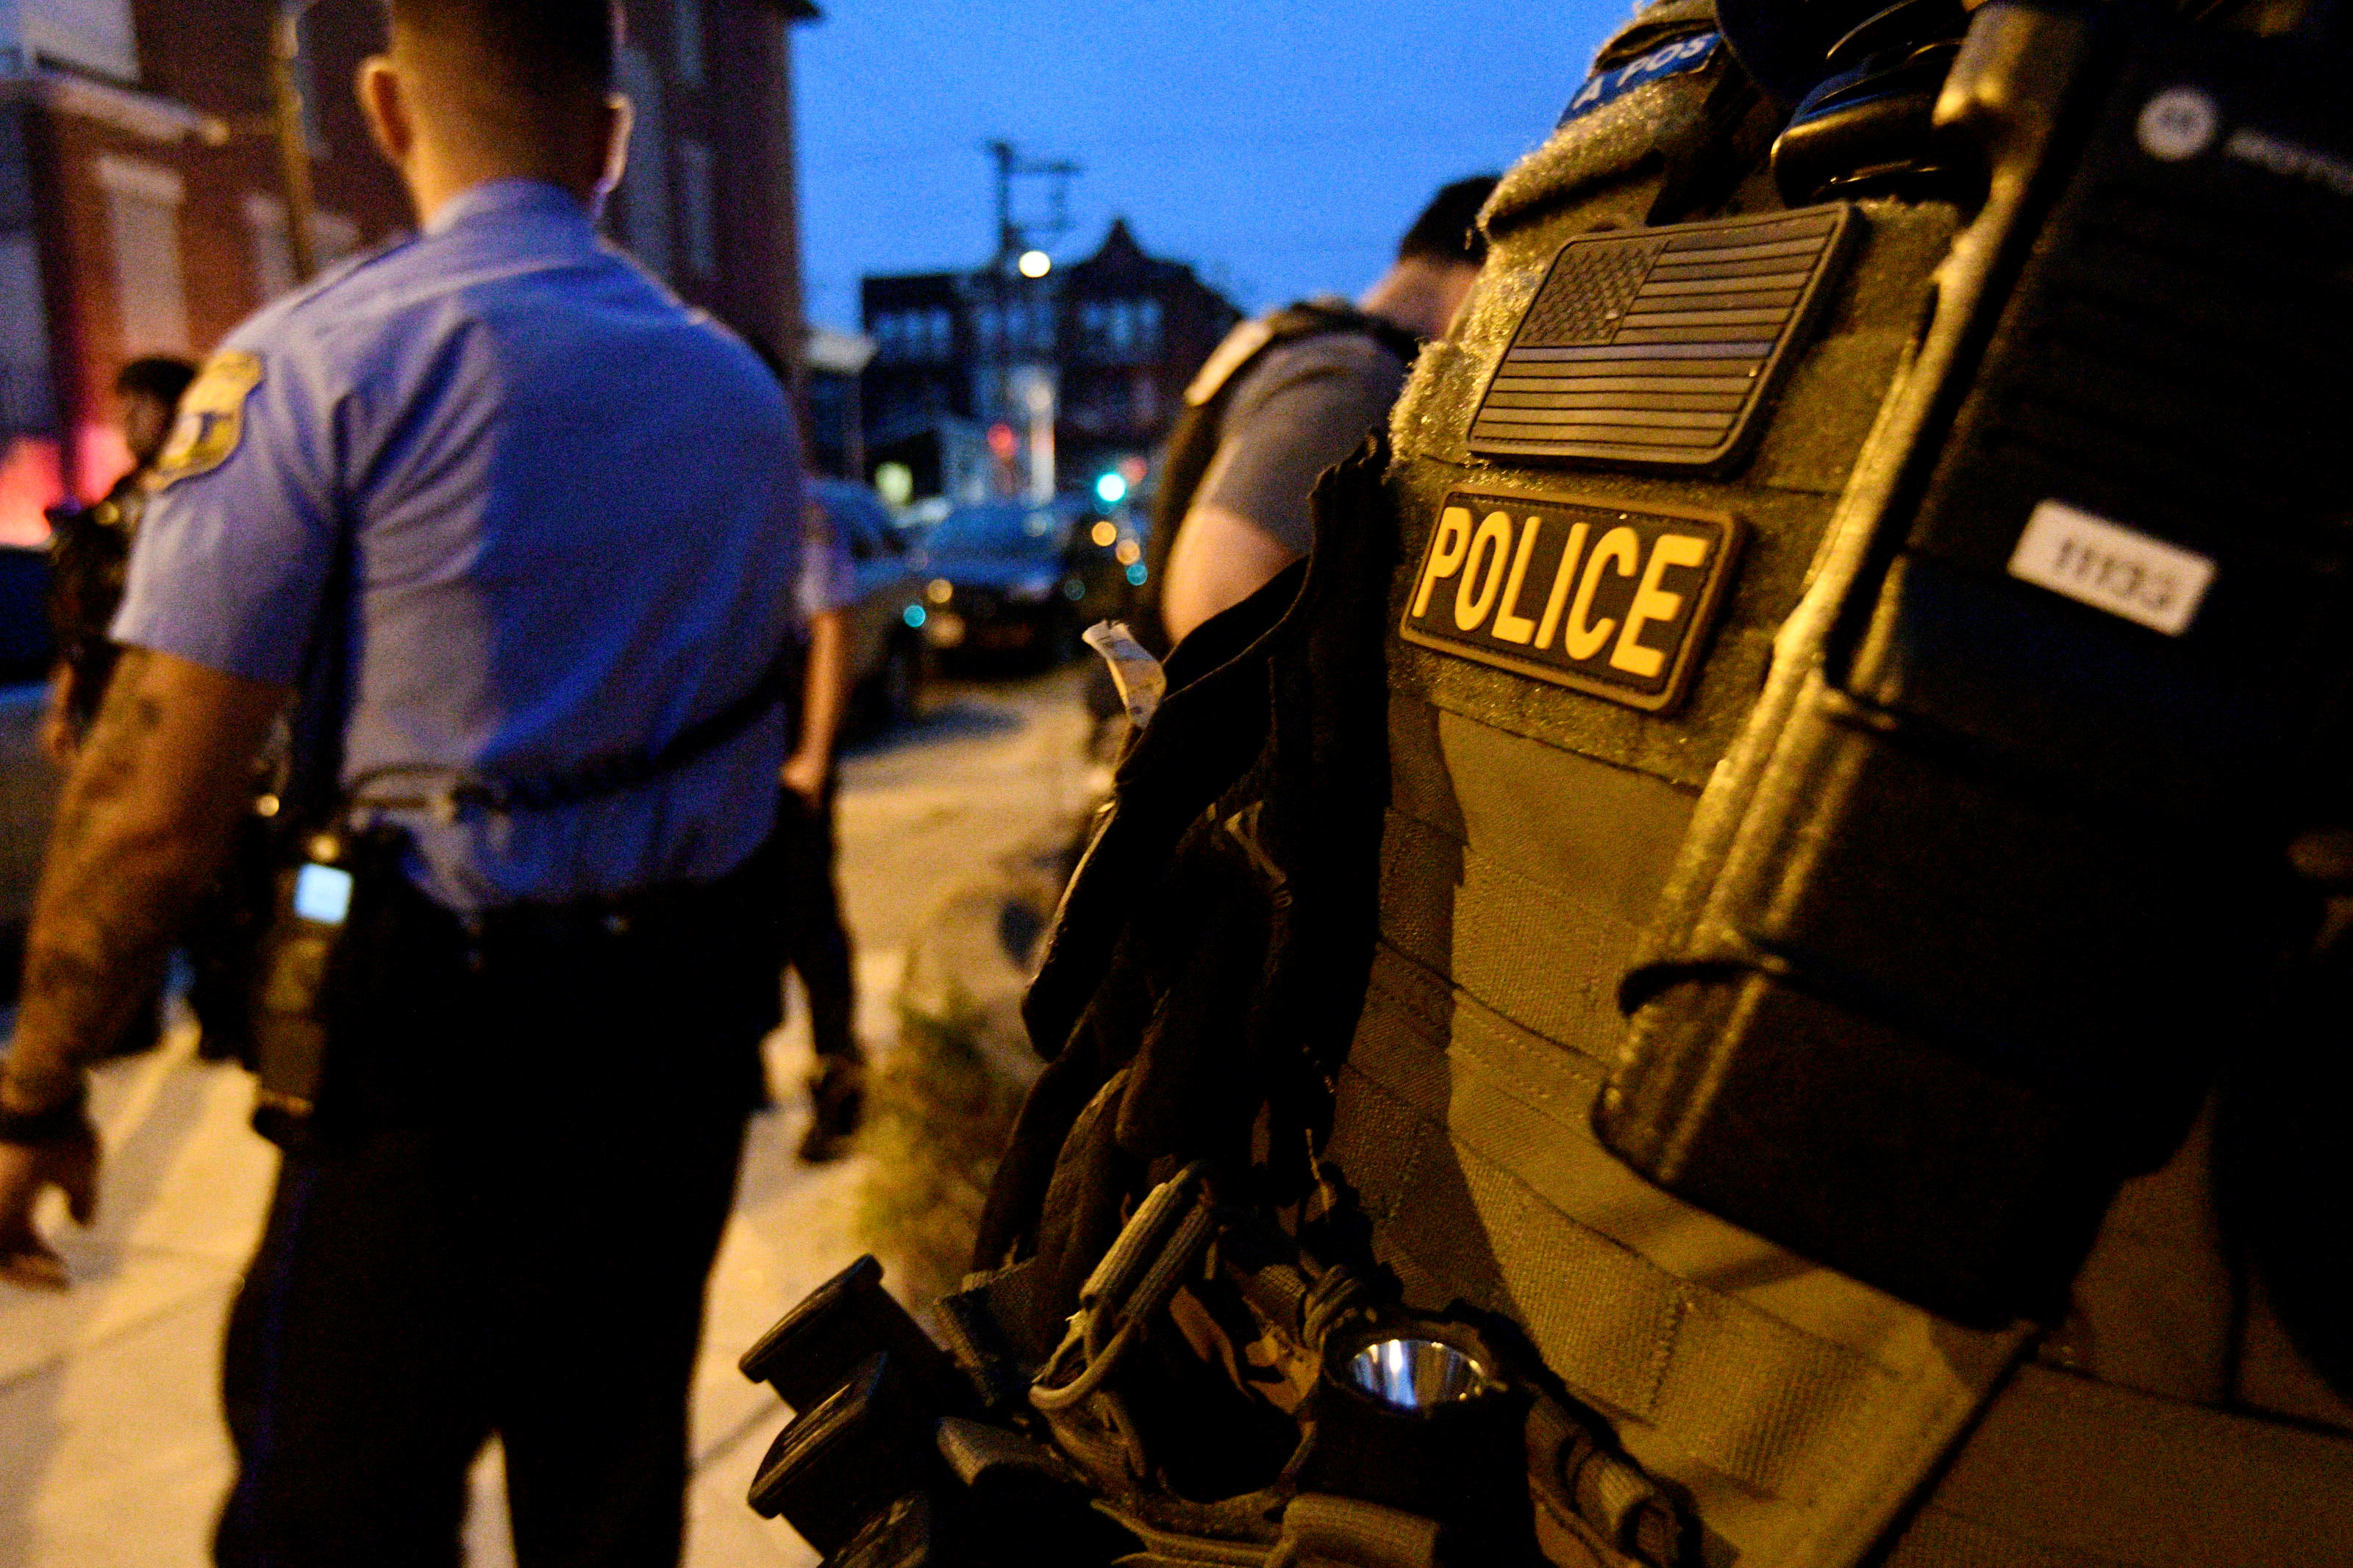 Police are seen during an active shooter situation in Philadelphia